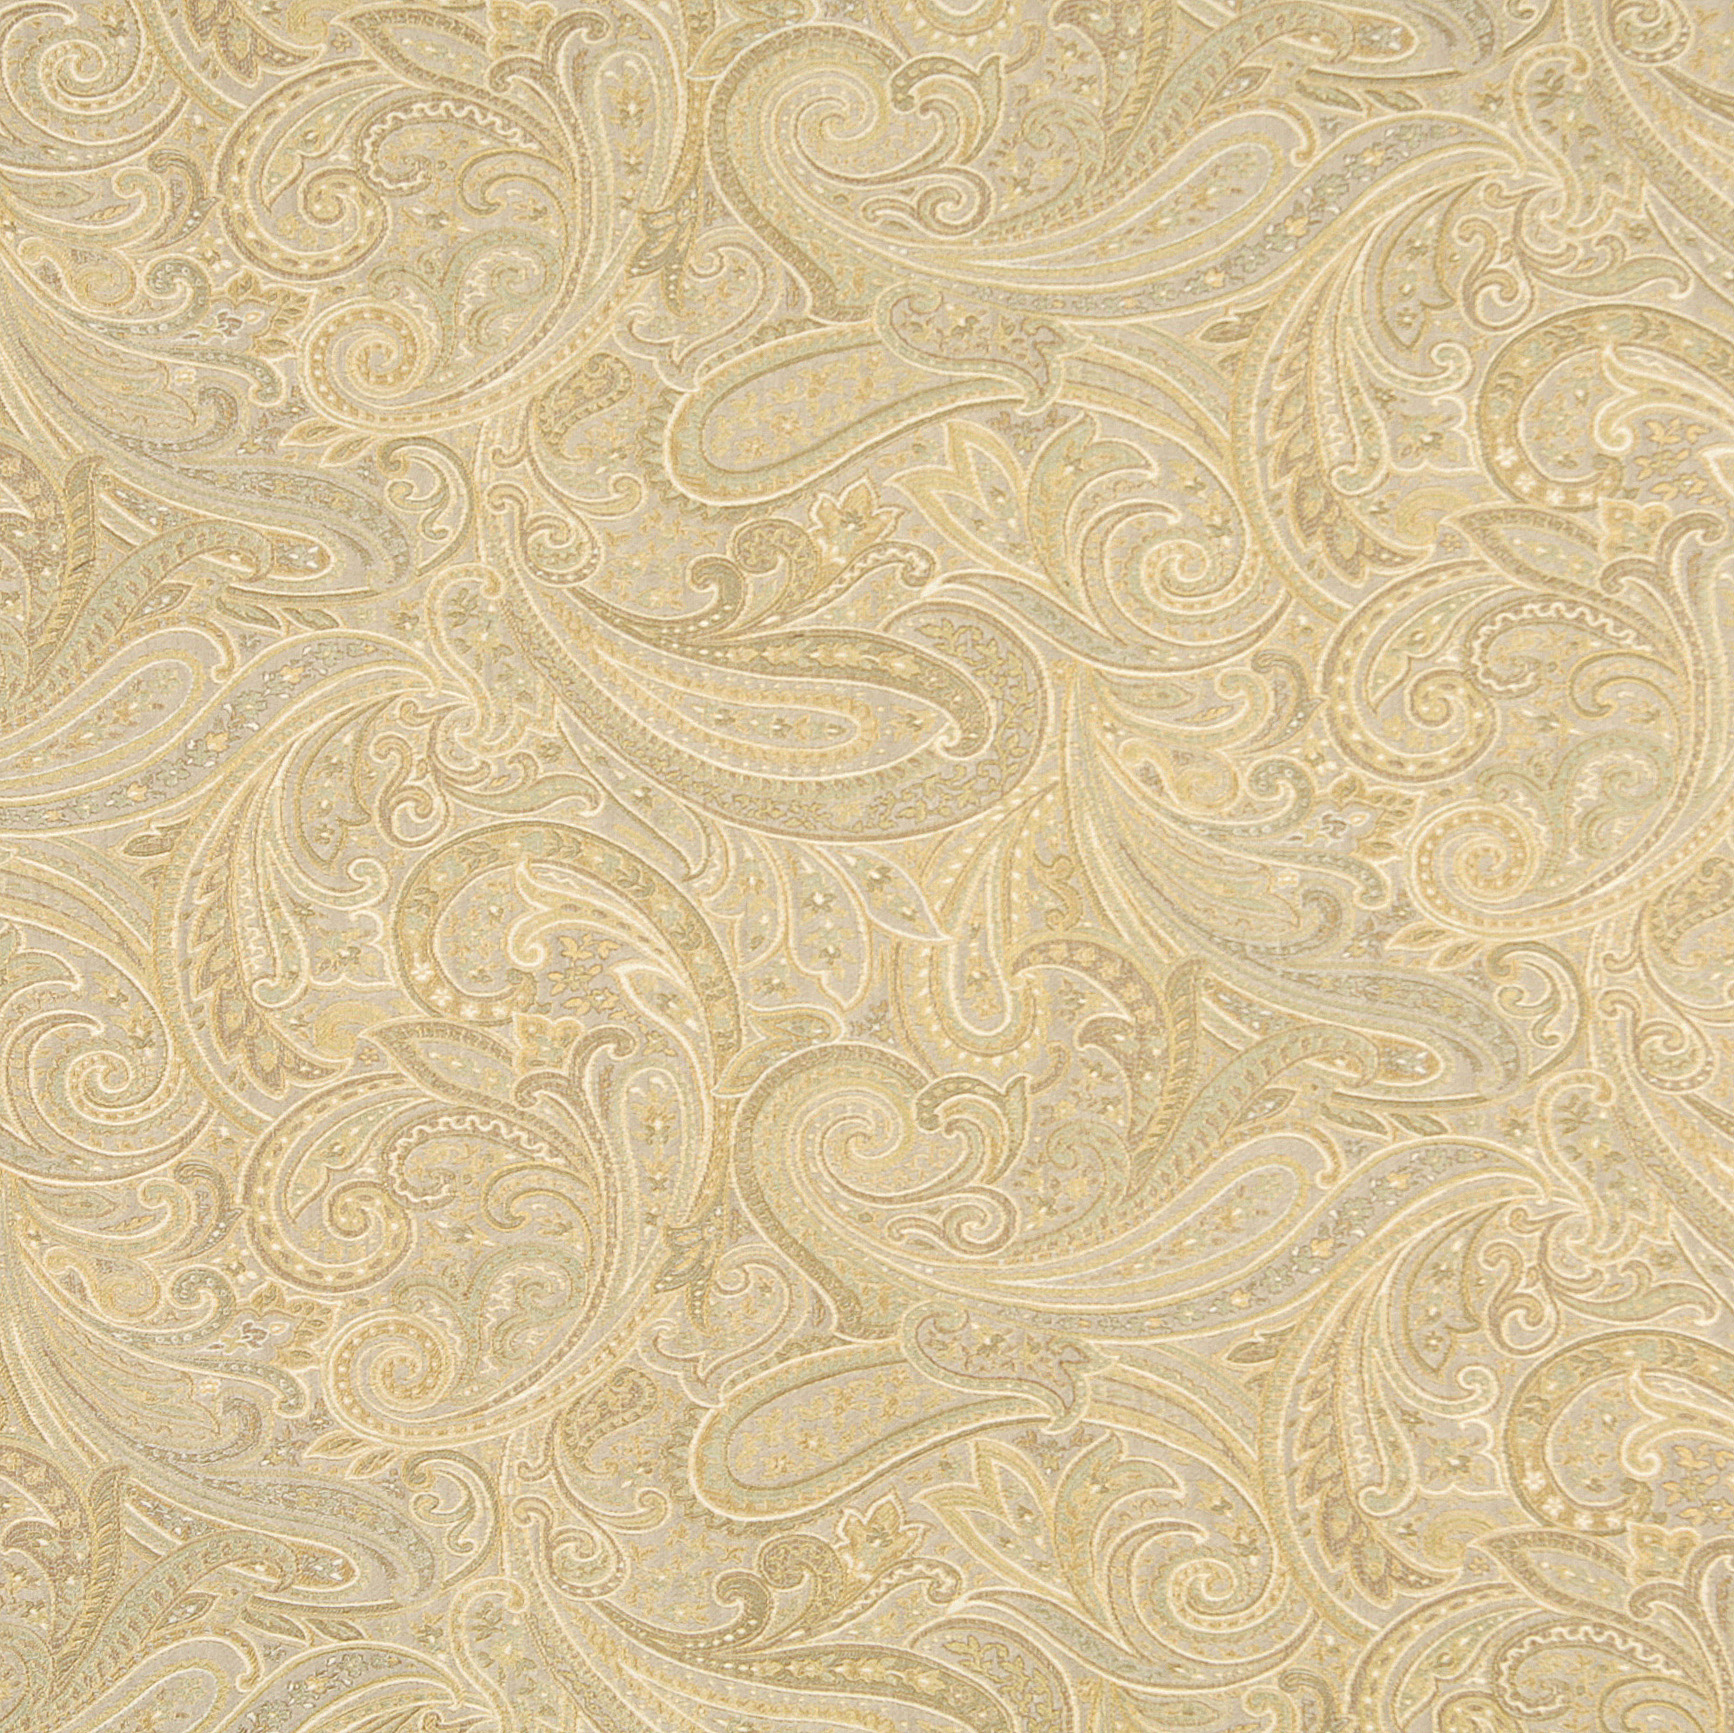 Soft Beige And Gold Abstract Paisley Damask Upholstery Fabric